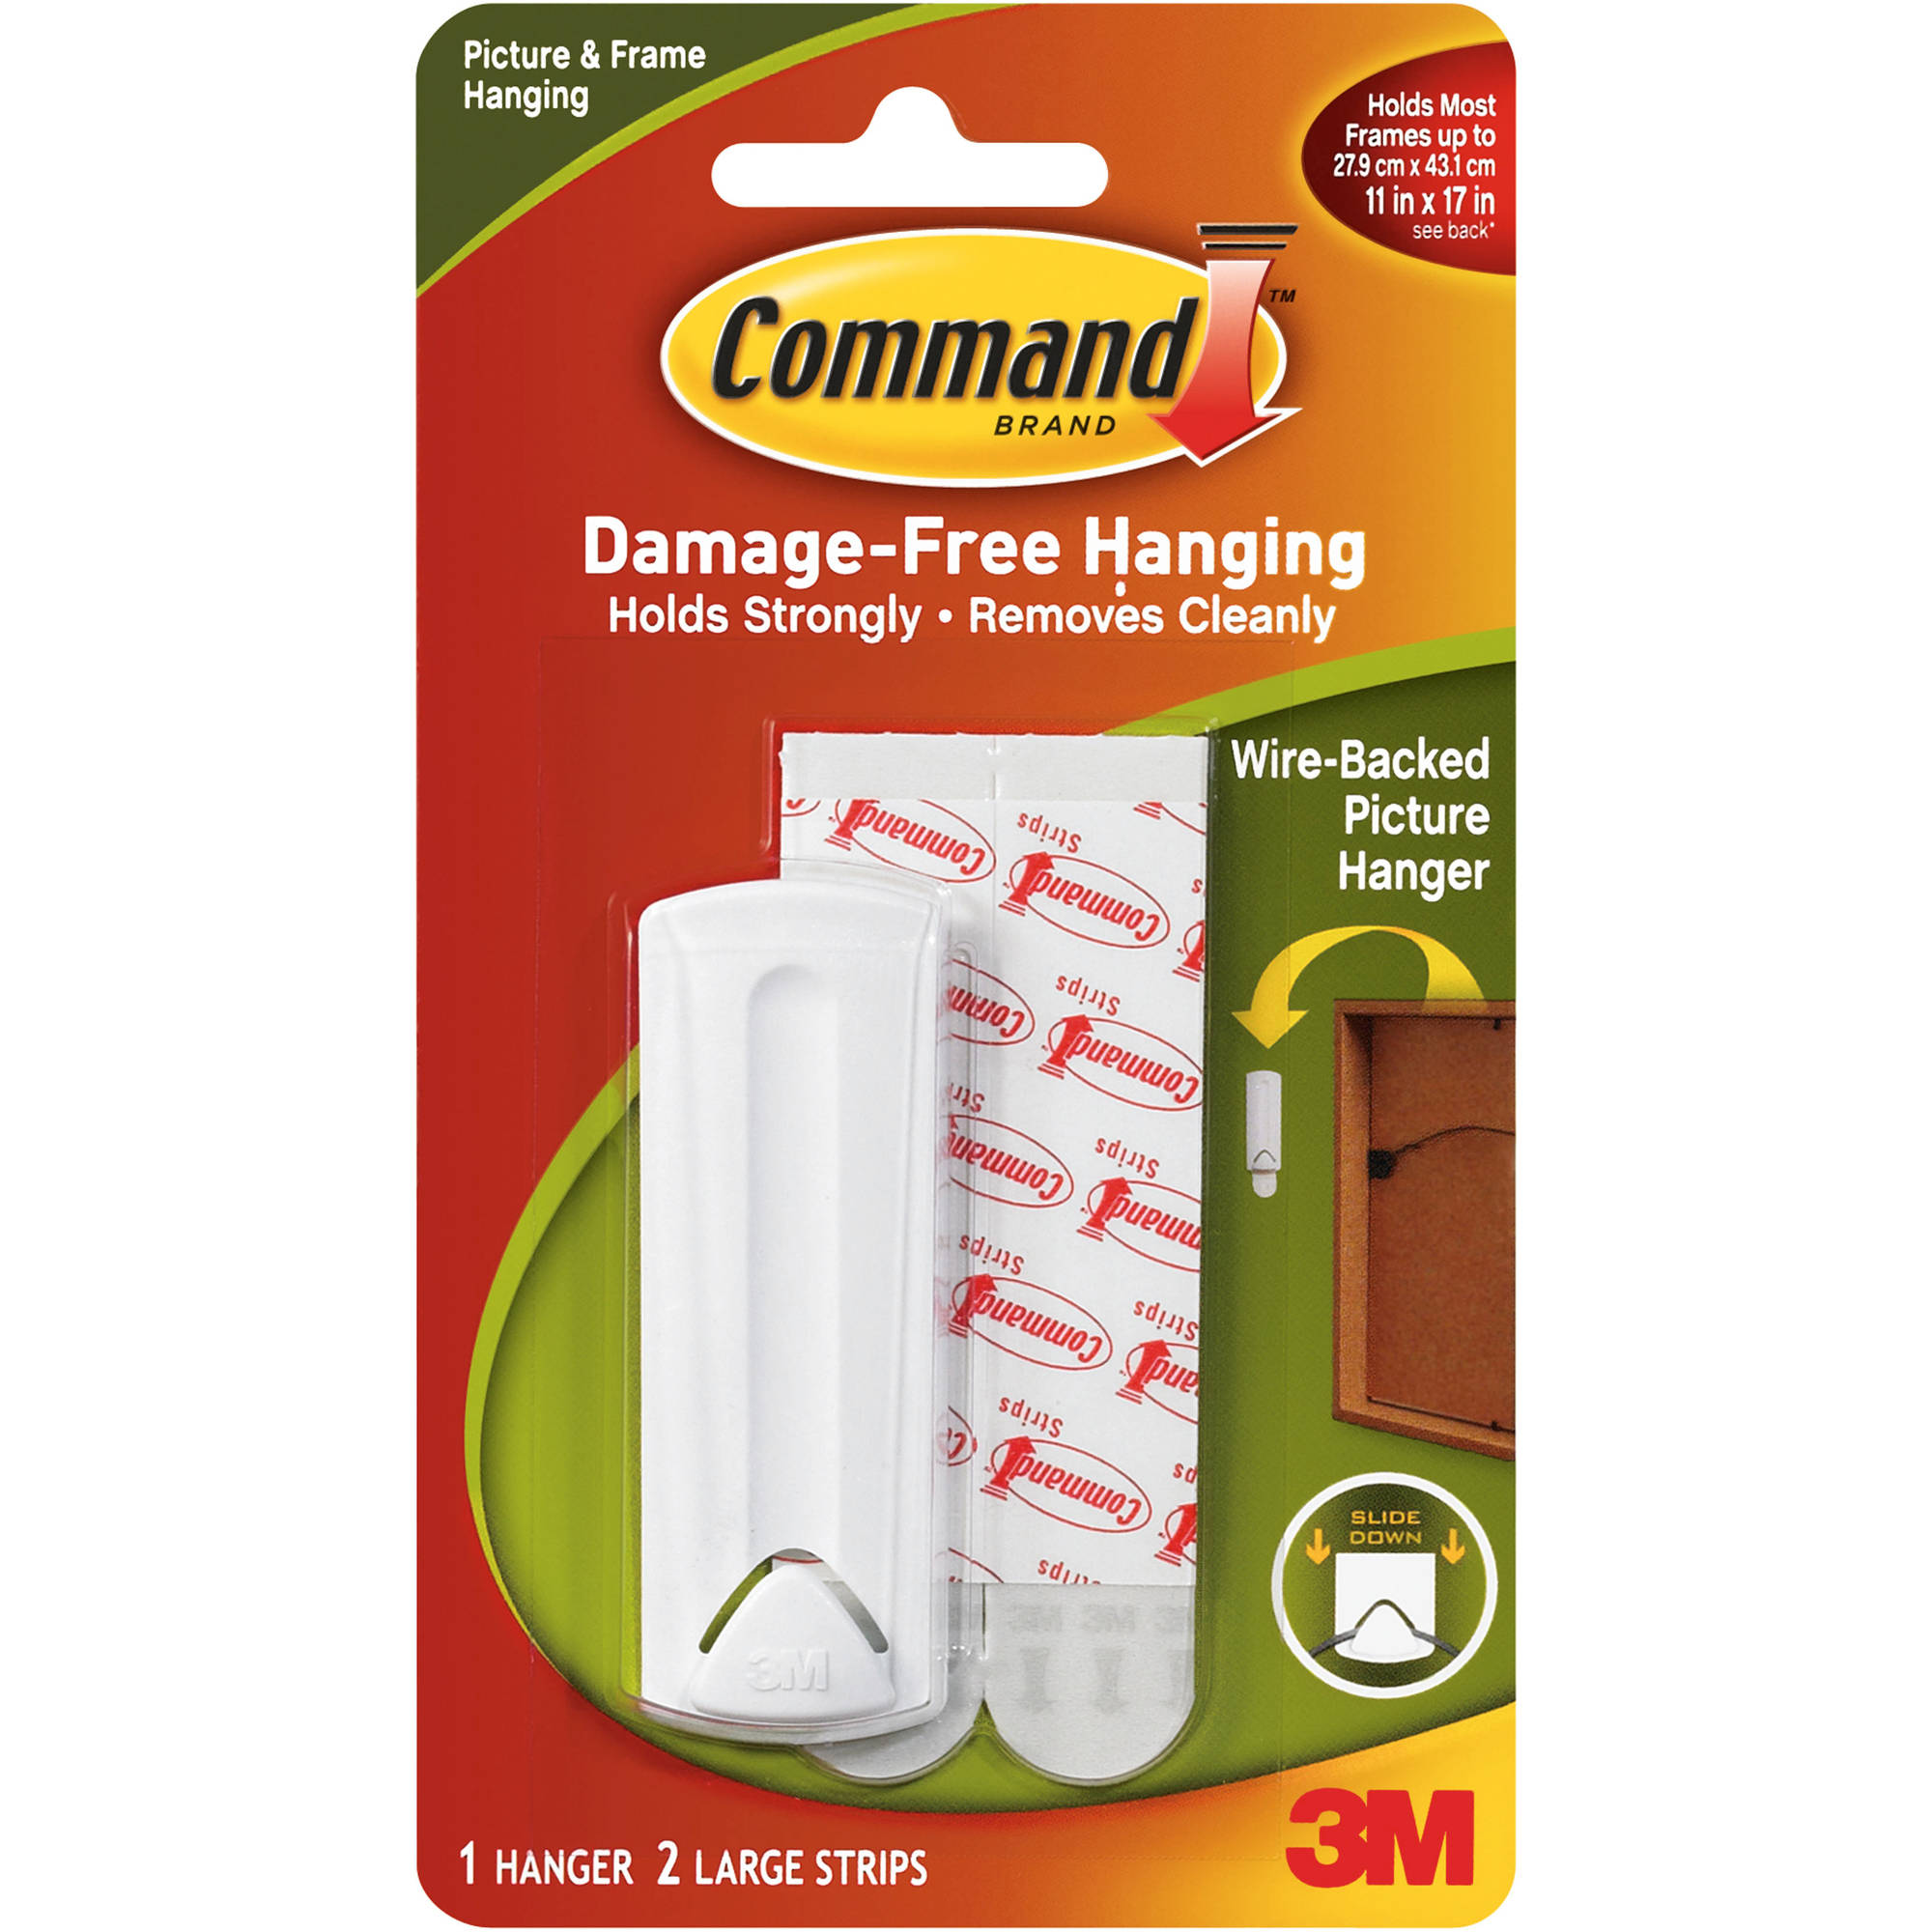 Command Wire-Backed Picture Hanger, White, 1 Hanger, 2 Strips, 17041